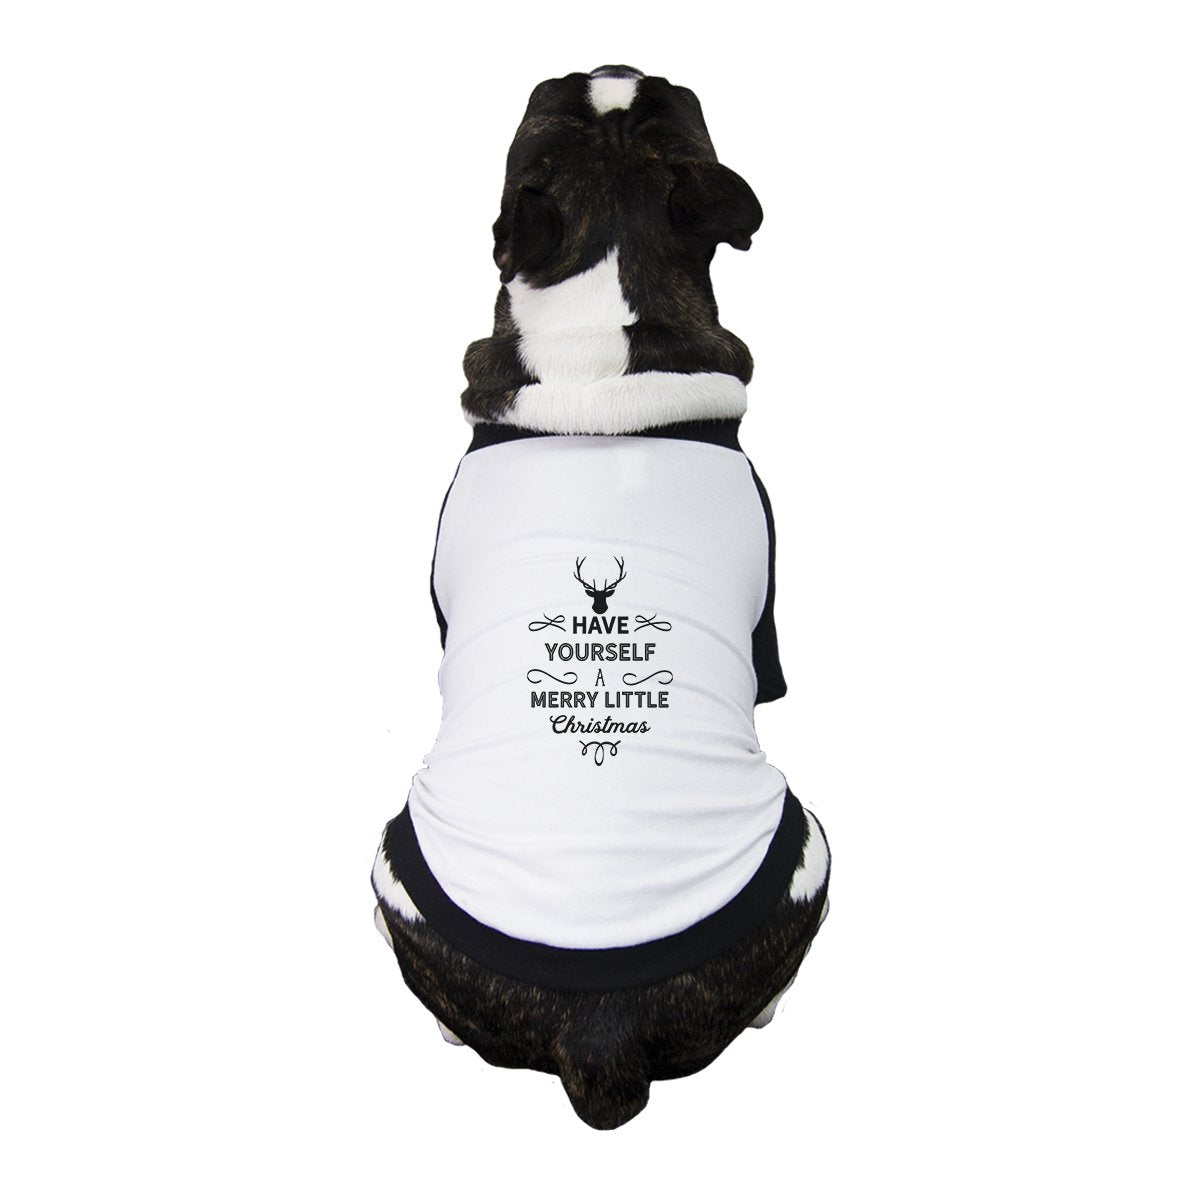 Have Yourself A Merry Little Christmas Pets Black And White Baseball Shirt